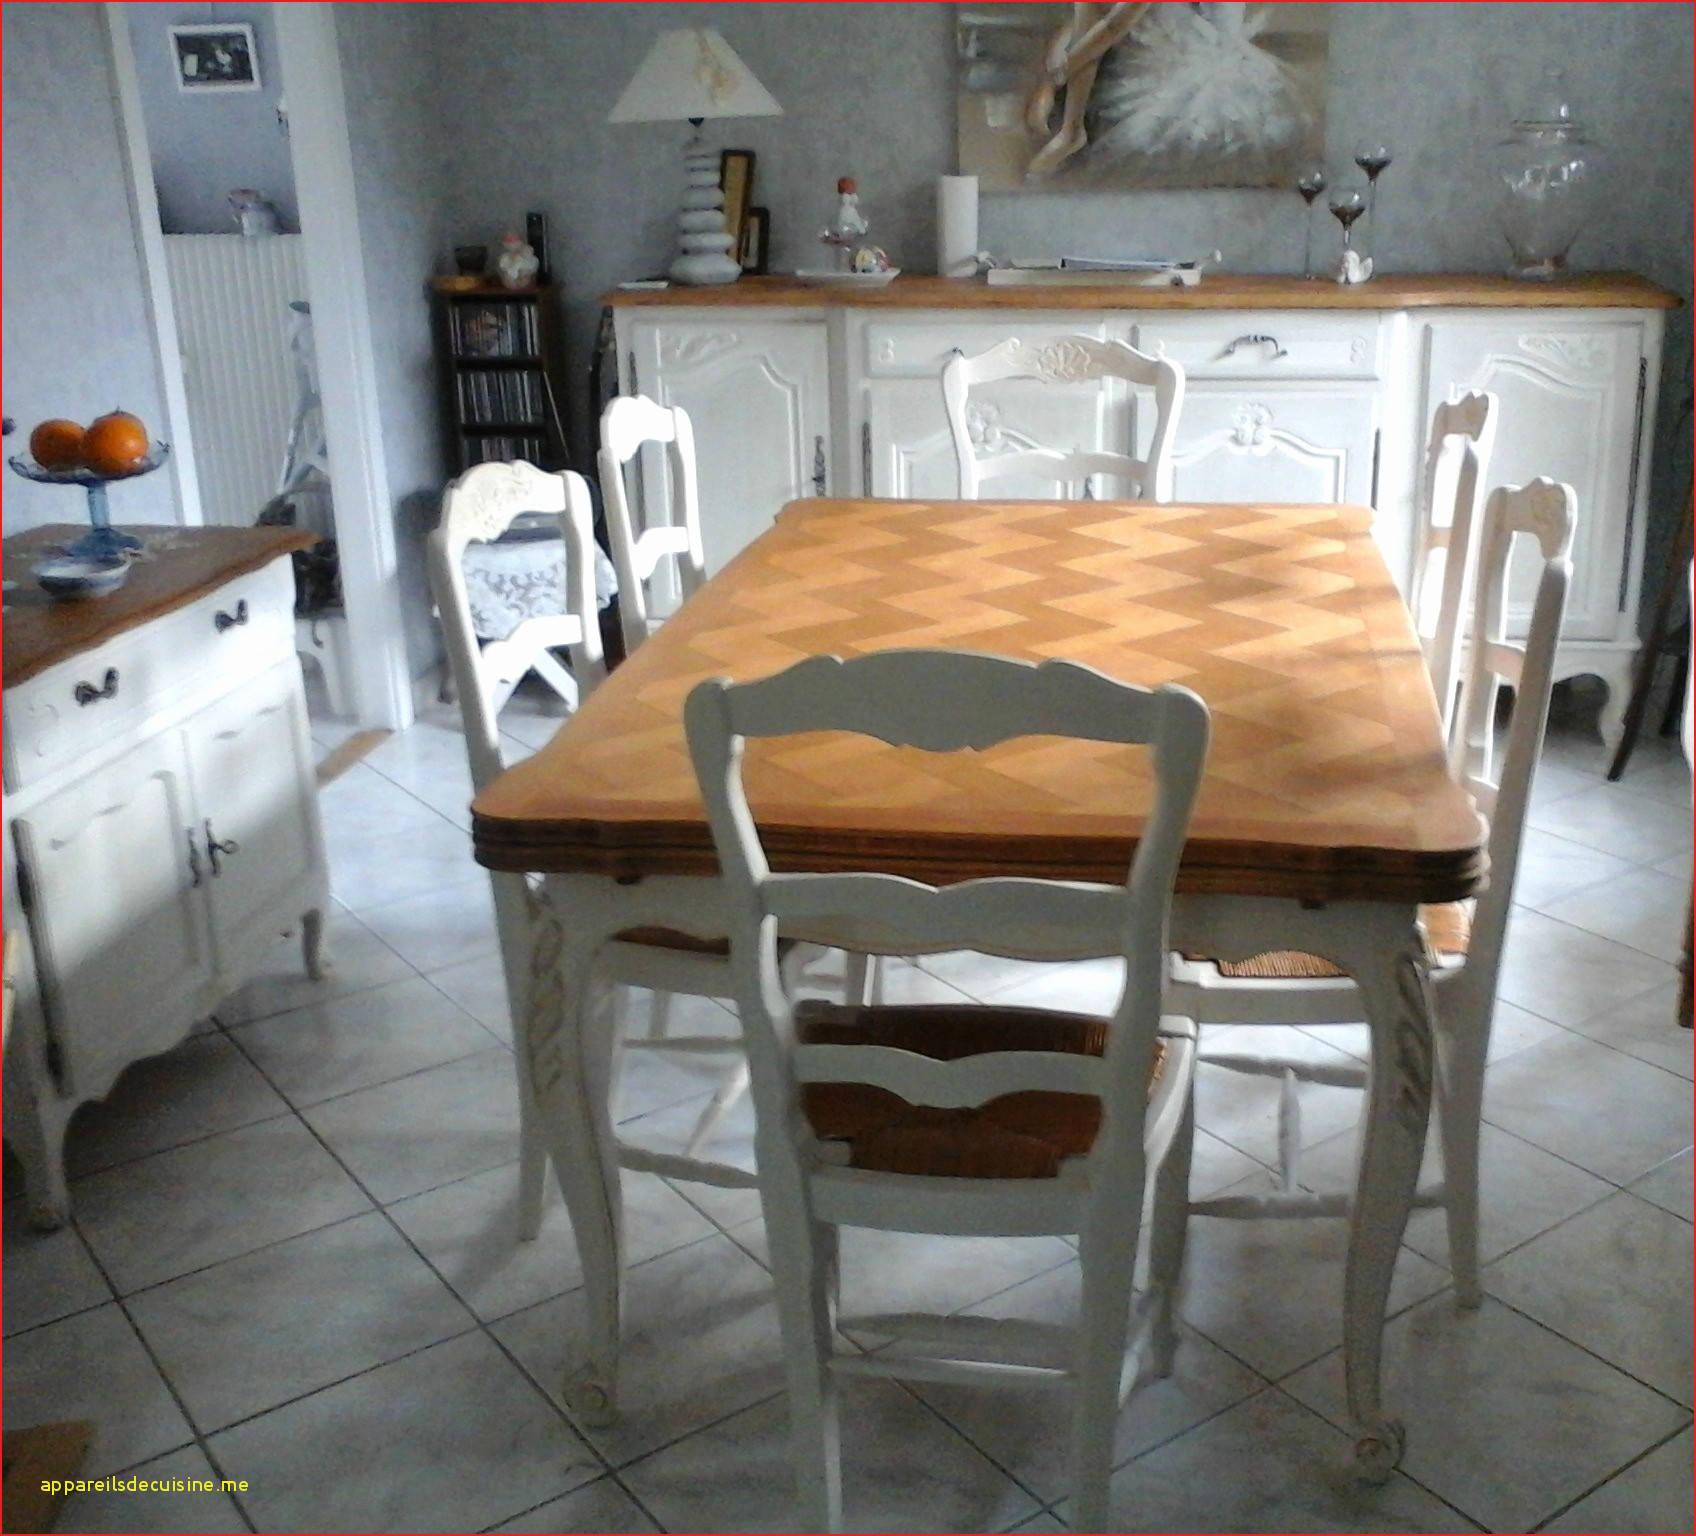 table salle a manger ikea table verre salle a manger luxe ikea table manger lovely 21 l gant of table salle a manger ikea